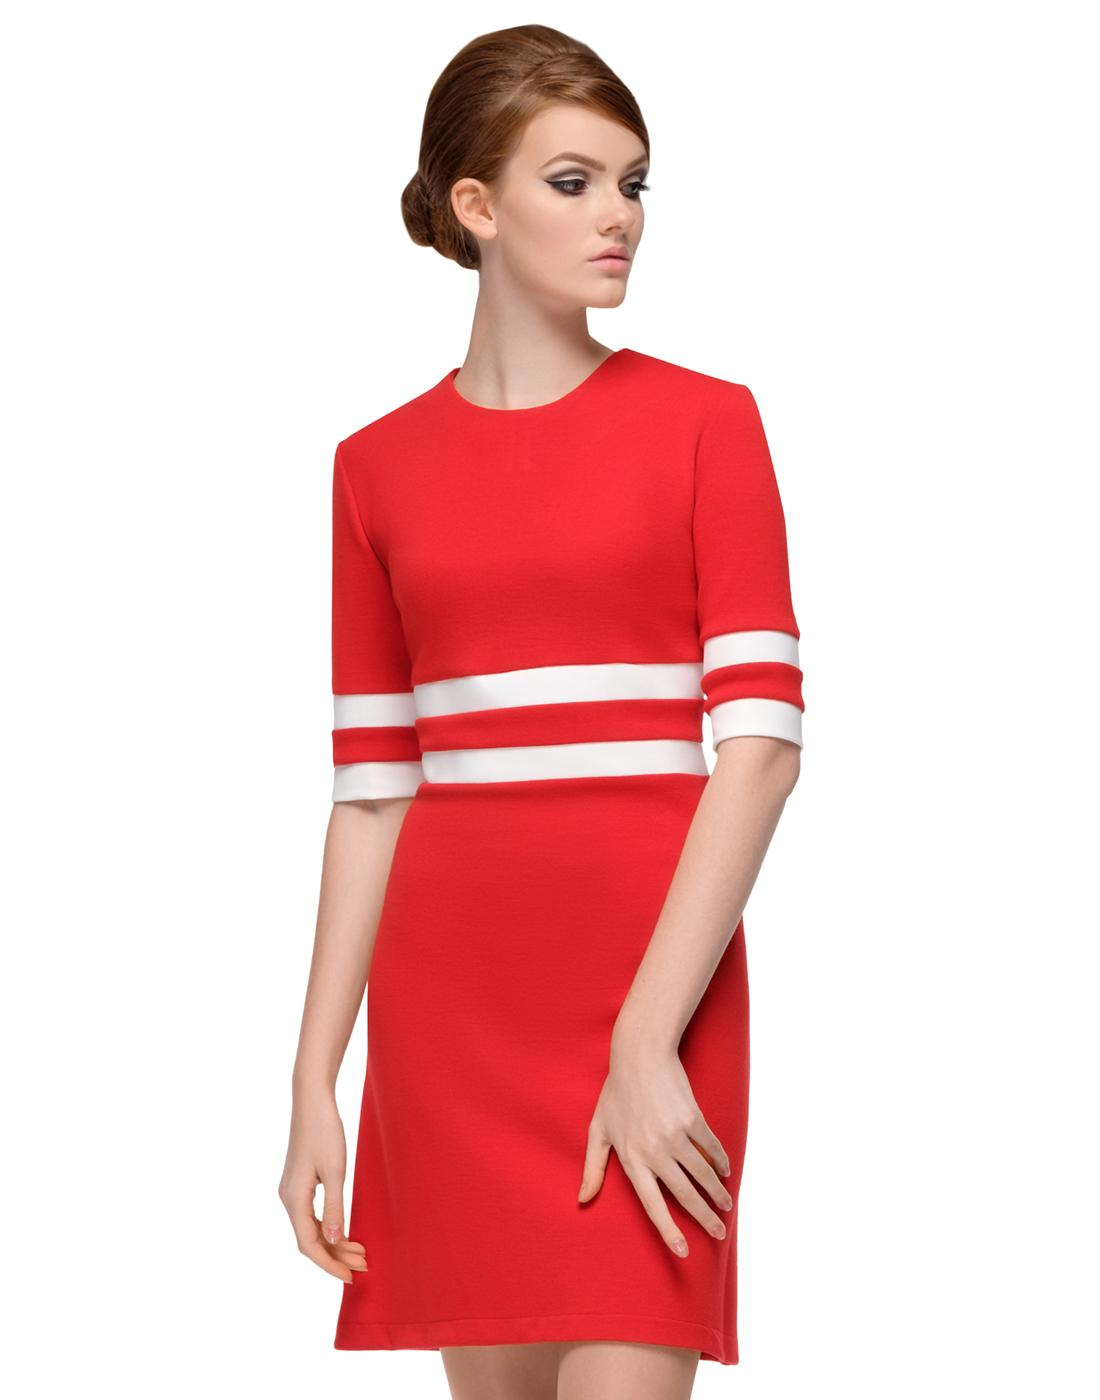 MARMALADE Retro 60s Mod Summer Dress in Red